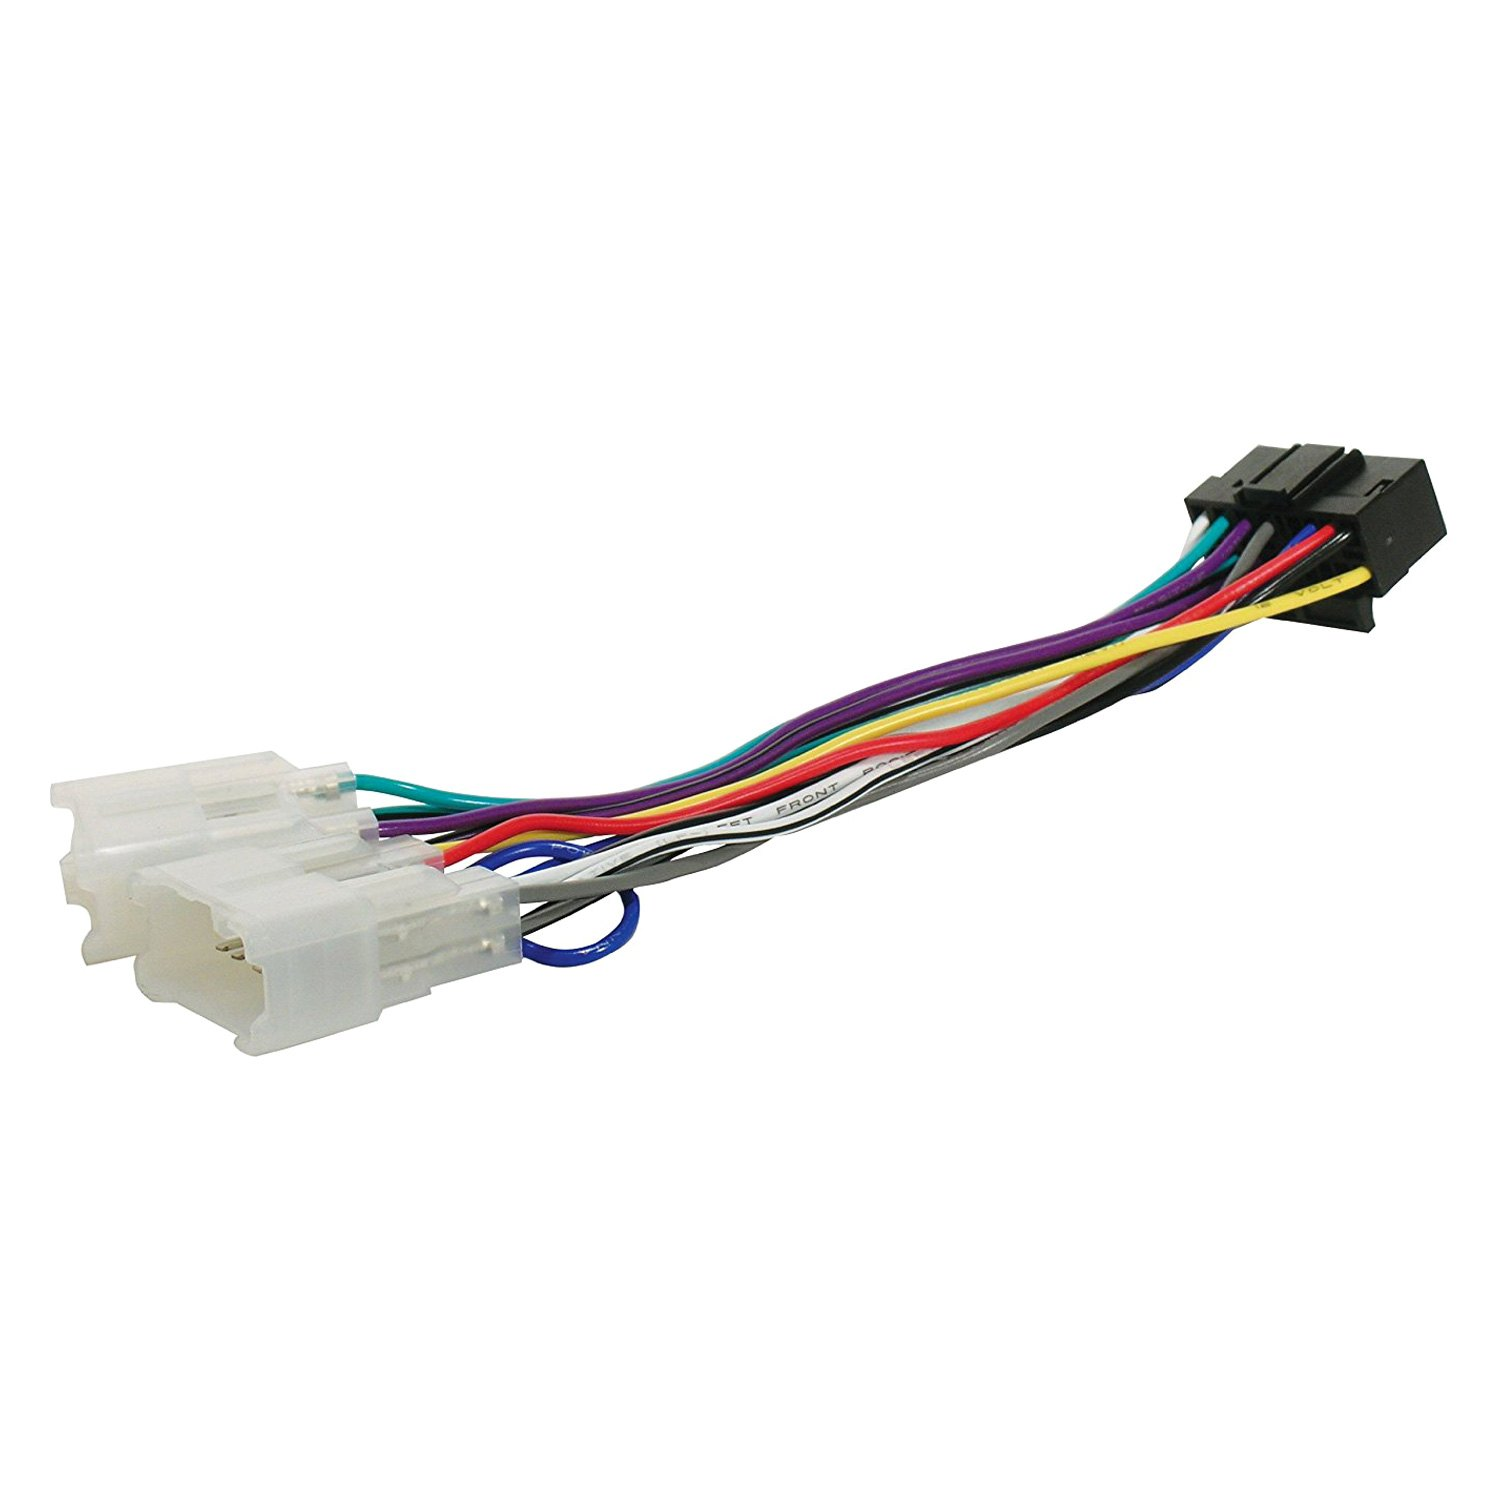 Scosche Wiring Harness Toyota Trusted Diagram Garmin Tundra 2005 Direct Connection Aftermarket Car